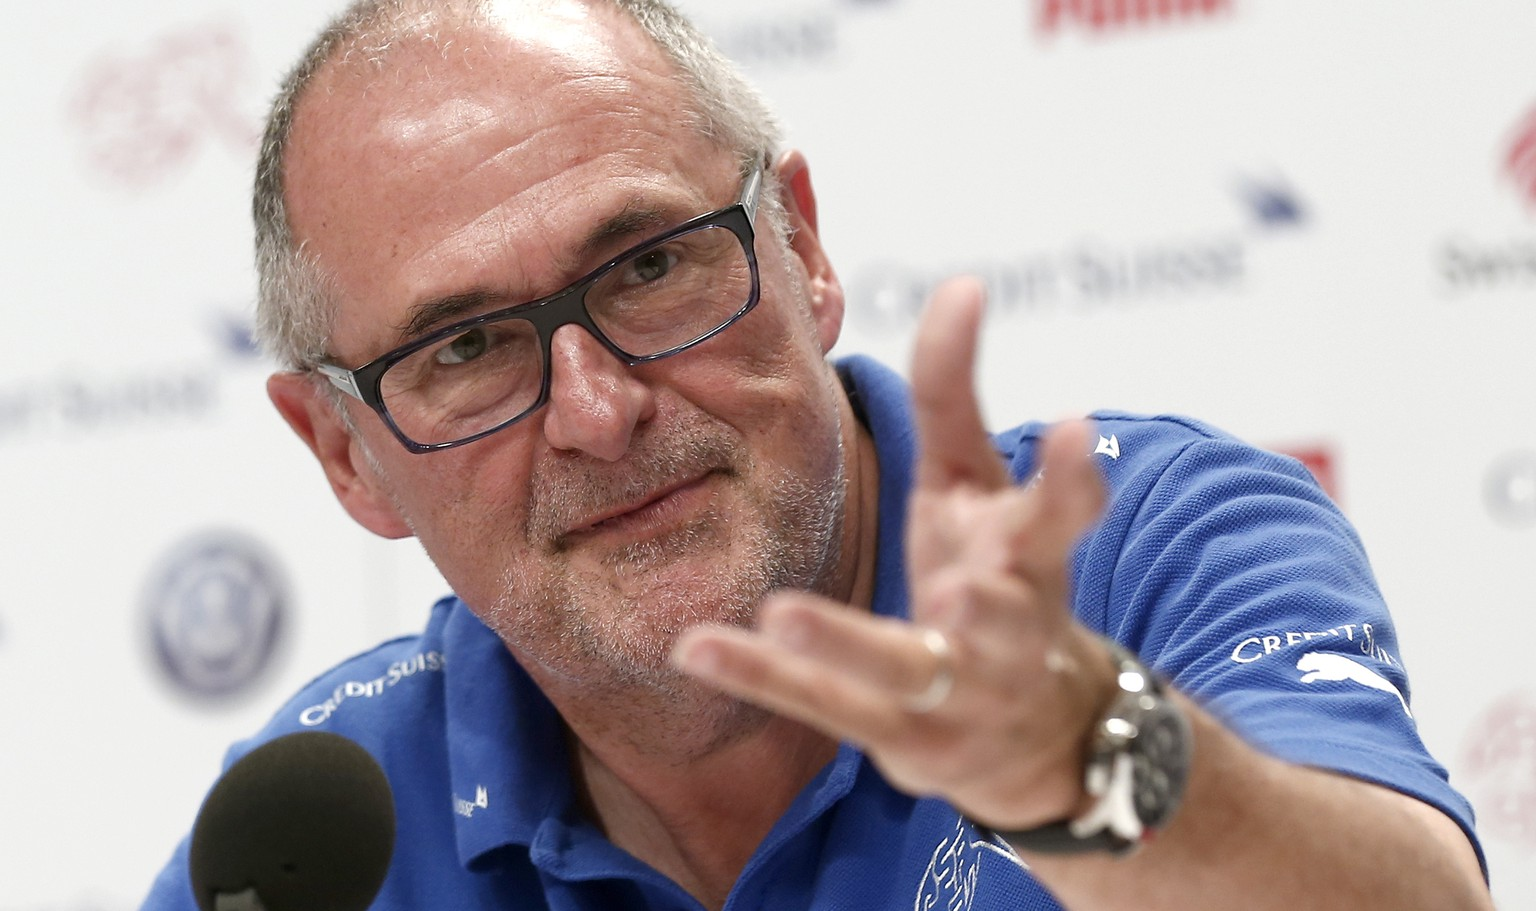 Peter Gillieron, president of the Swiss football association, speaks to journalists during a media conference of the Swiss national soccer team in Porto Seguro, Brazil, Friday, June 27, 2014. (KEYSTONE/Peter Klaunzer)